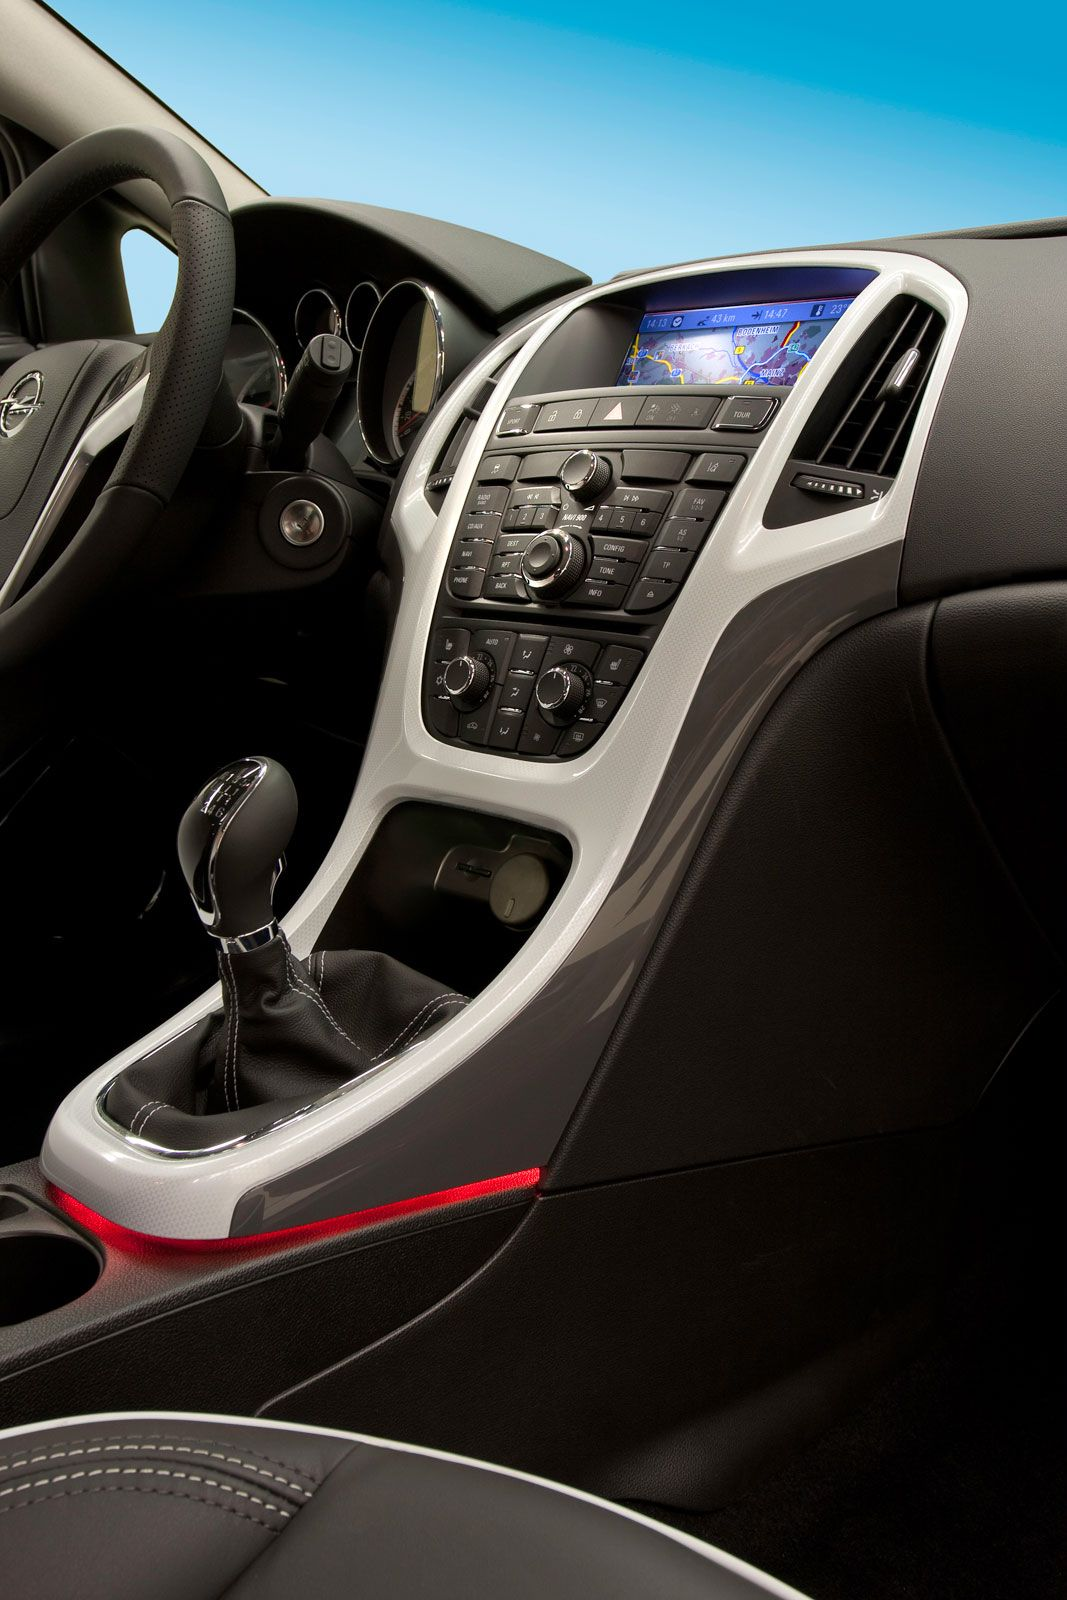 Opel Astra GTC - Interior | All Aspects of Opel Cars | Pinterest ...